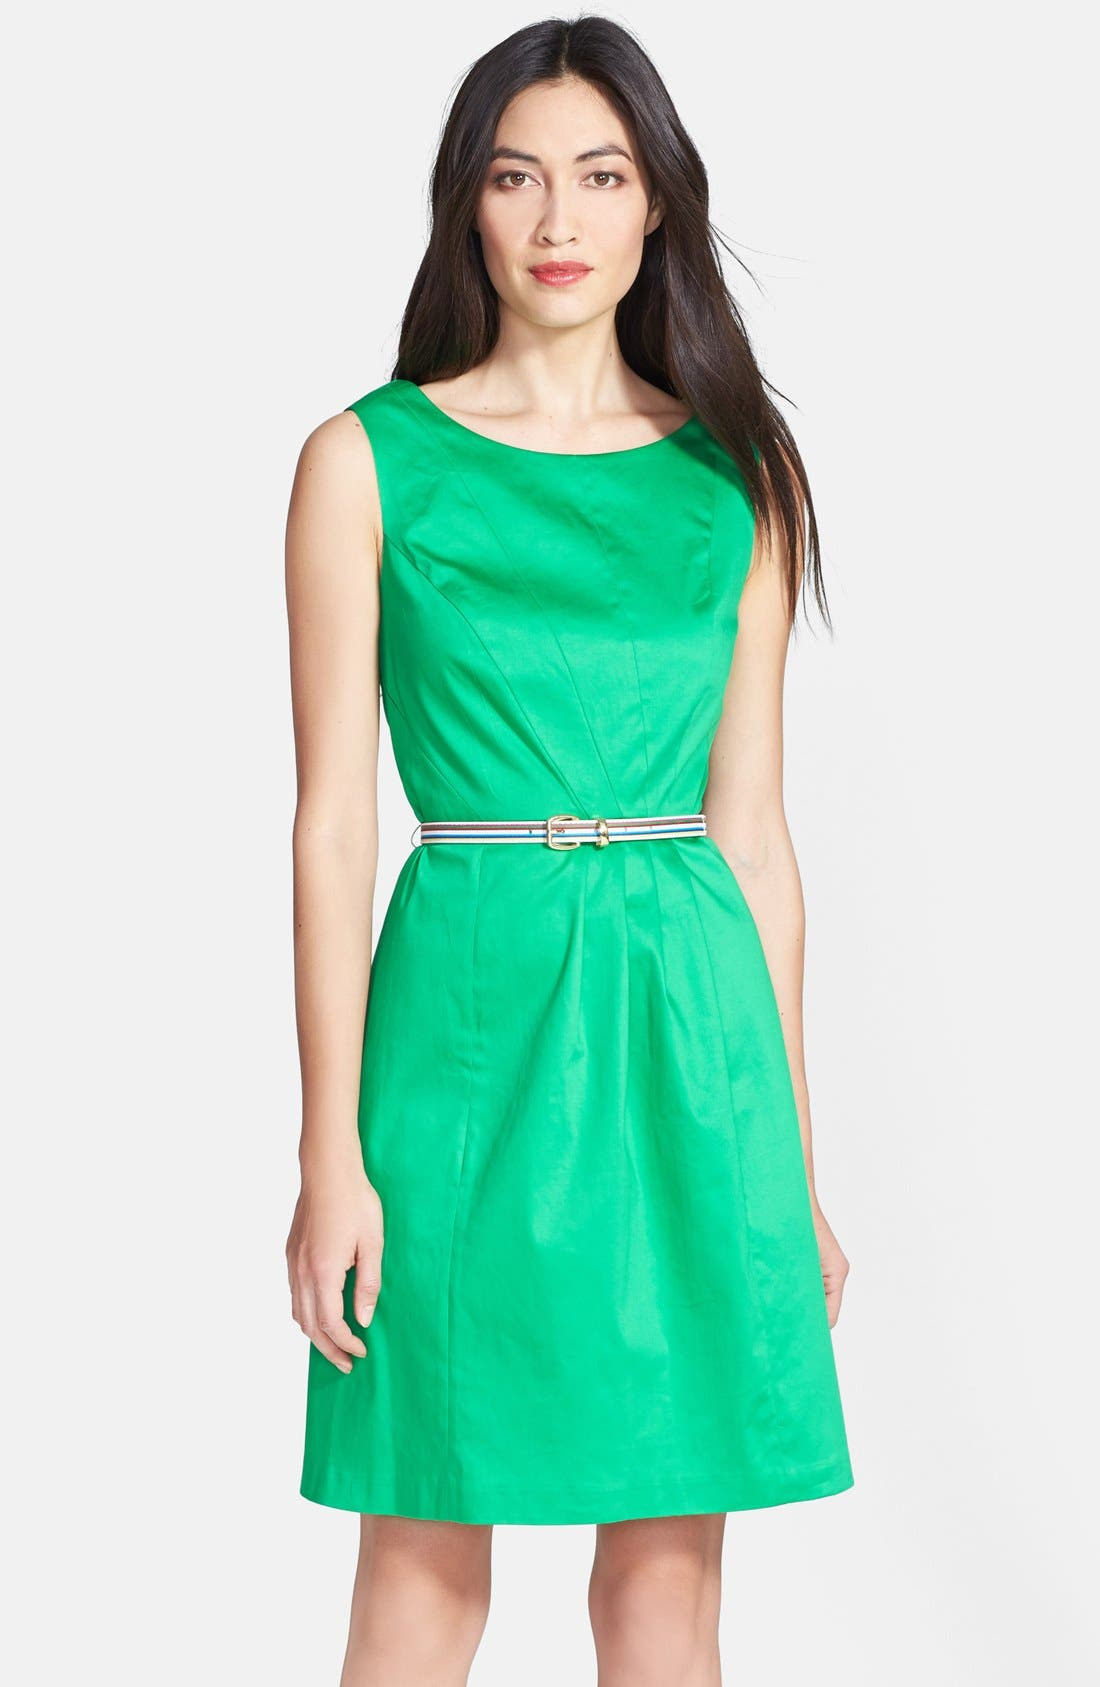 Alternate Image 1 Selected - Ellen Tracy Sleeveless Origami Pleat Stretch Cotton Fit & Flare Dress